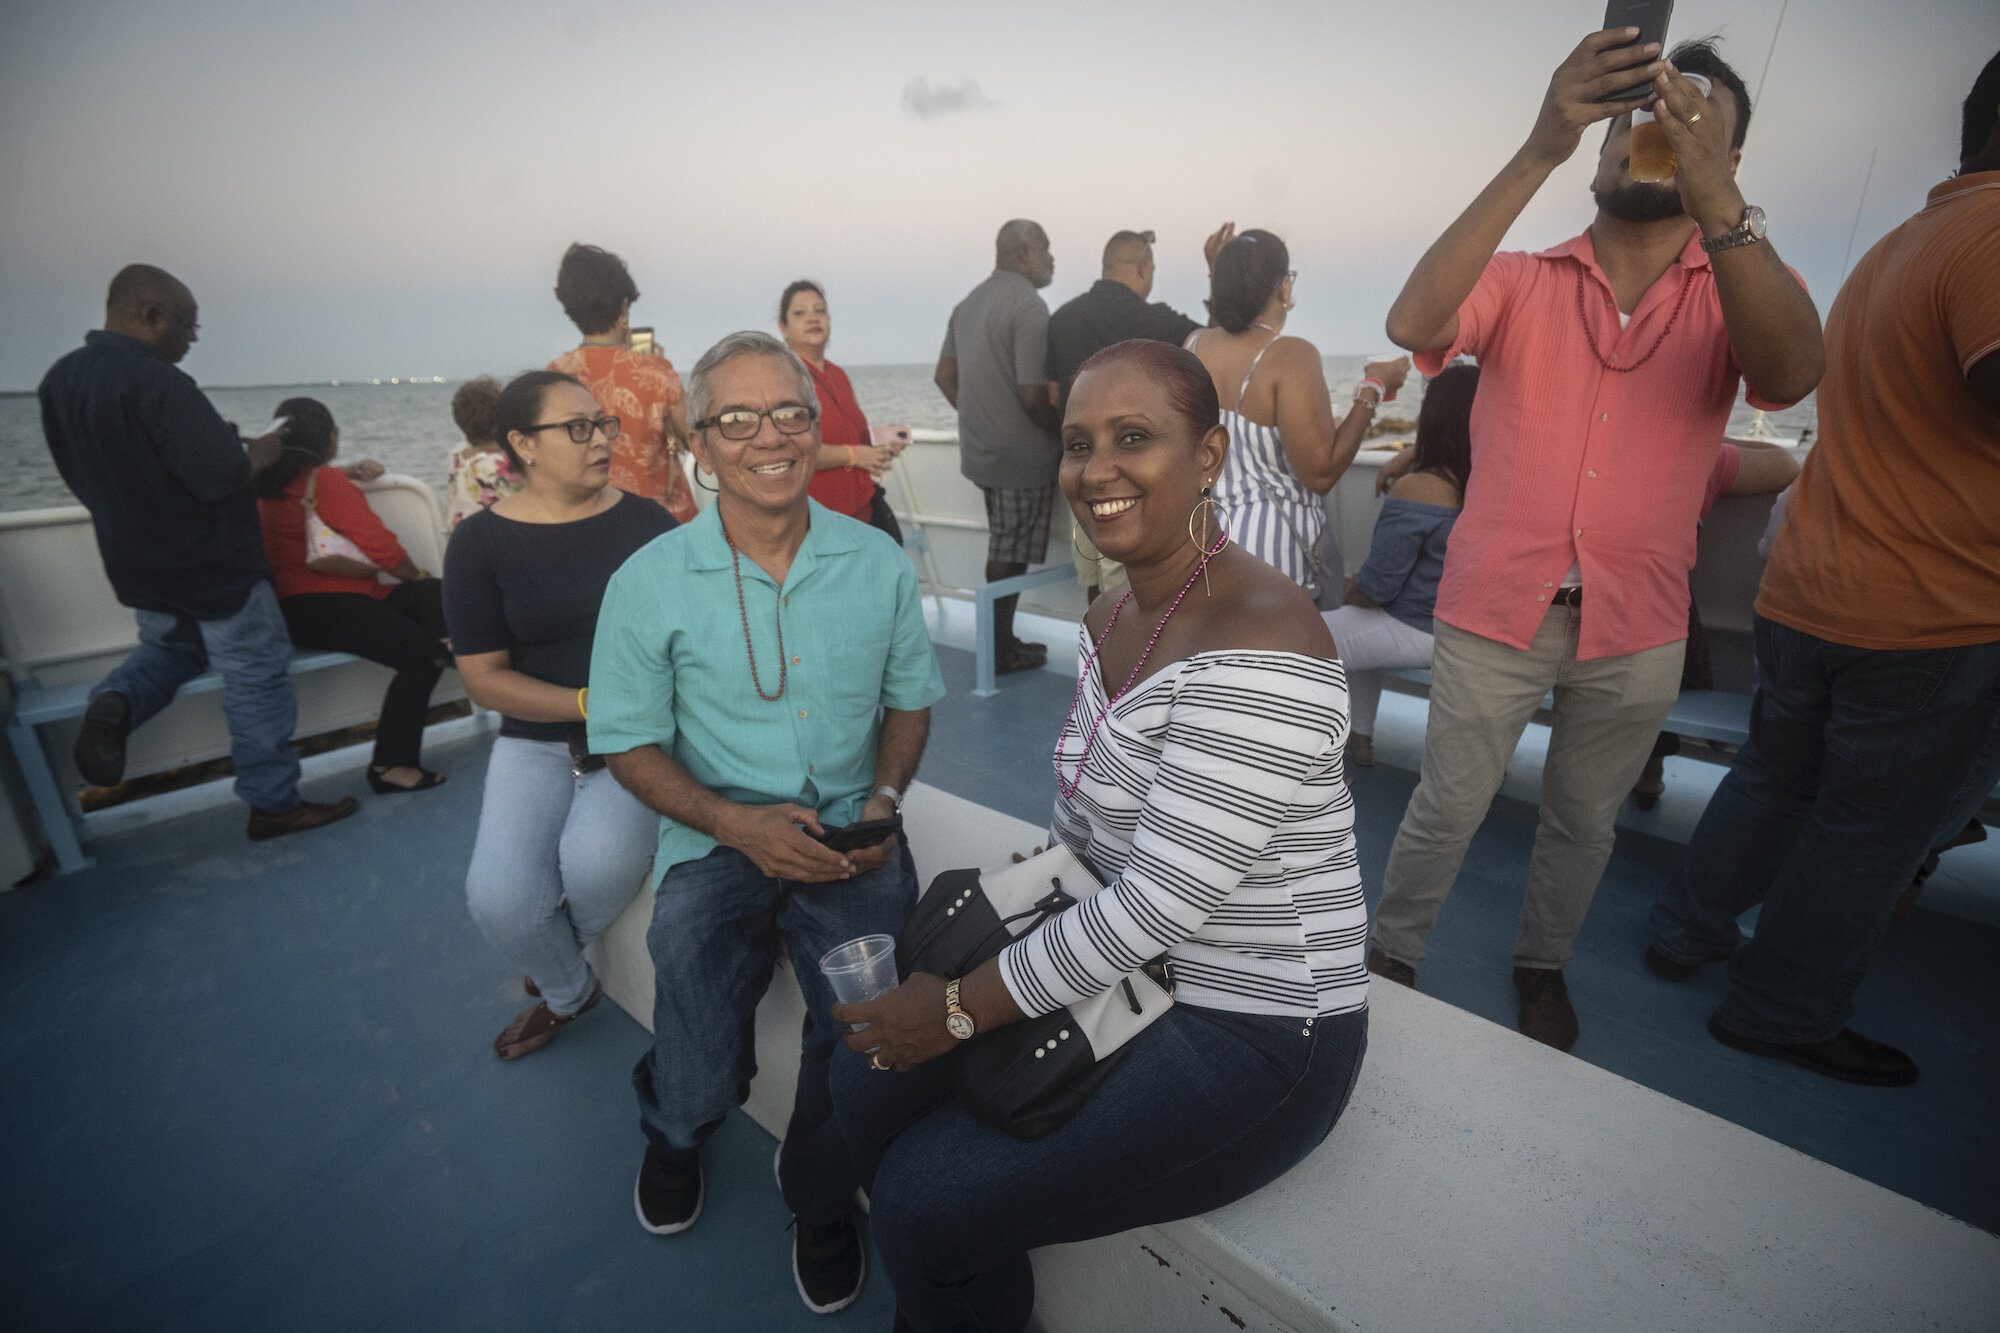 One hundred friends of St. Martin's turned out for a boat cruise to raise money for the school.